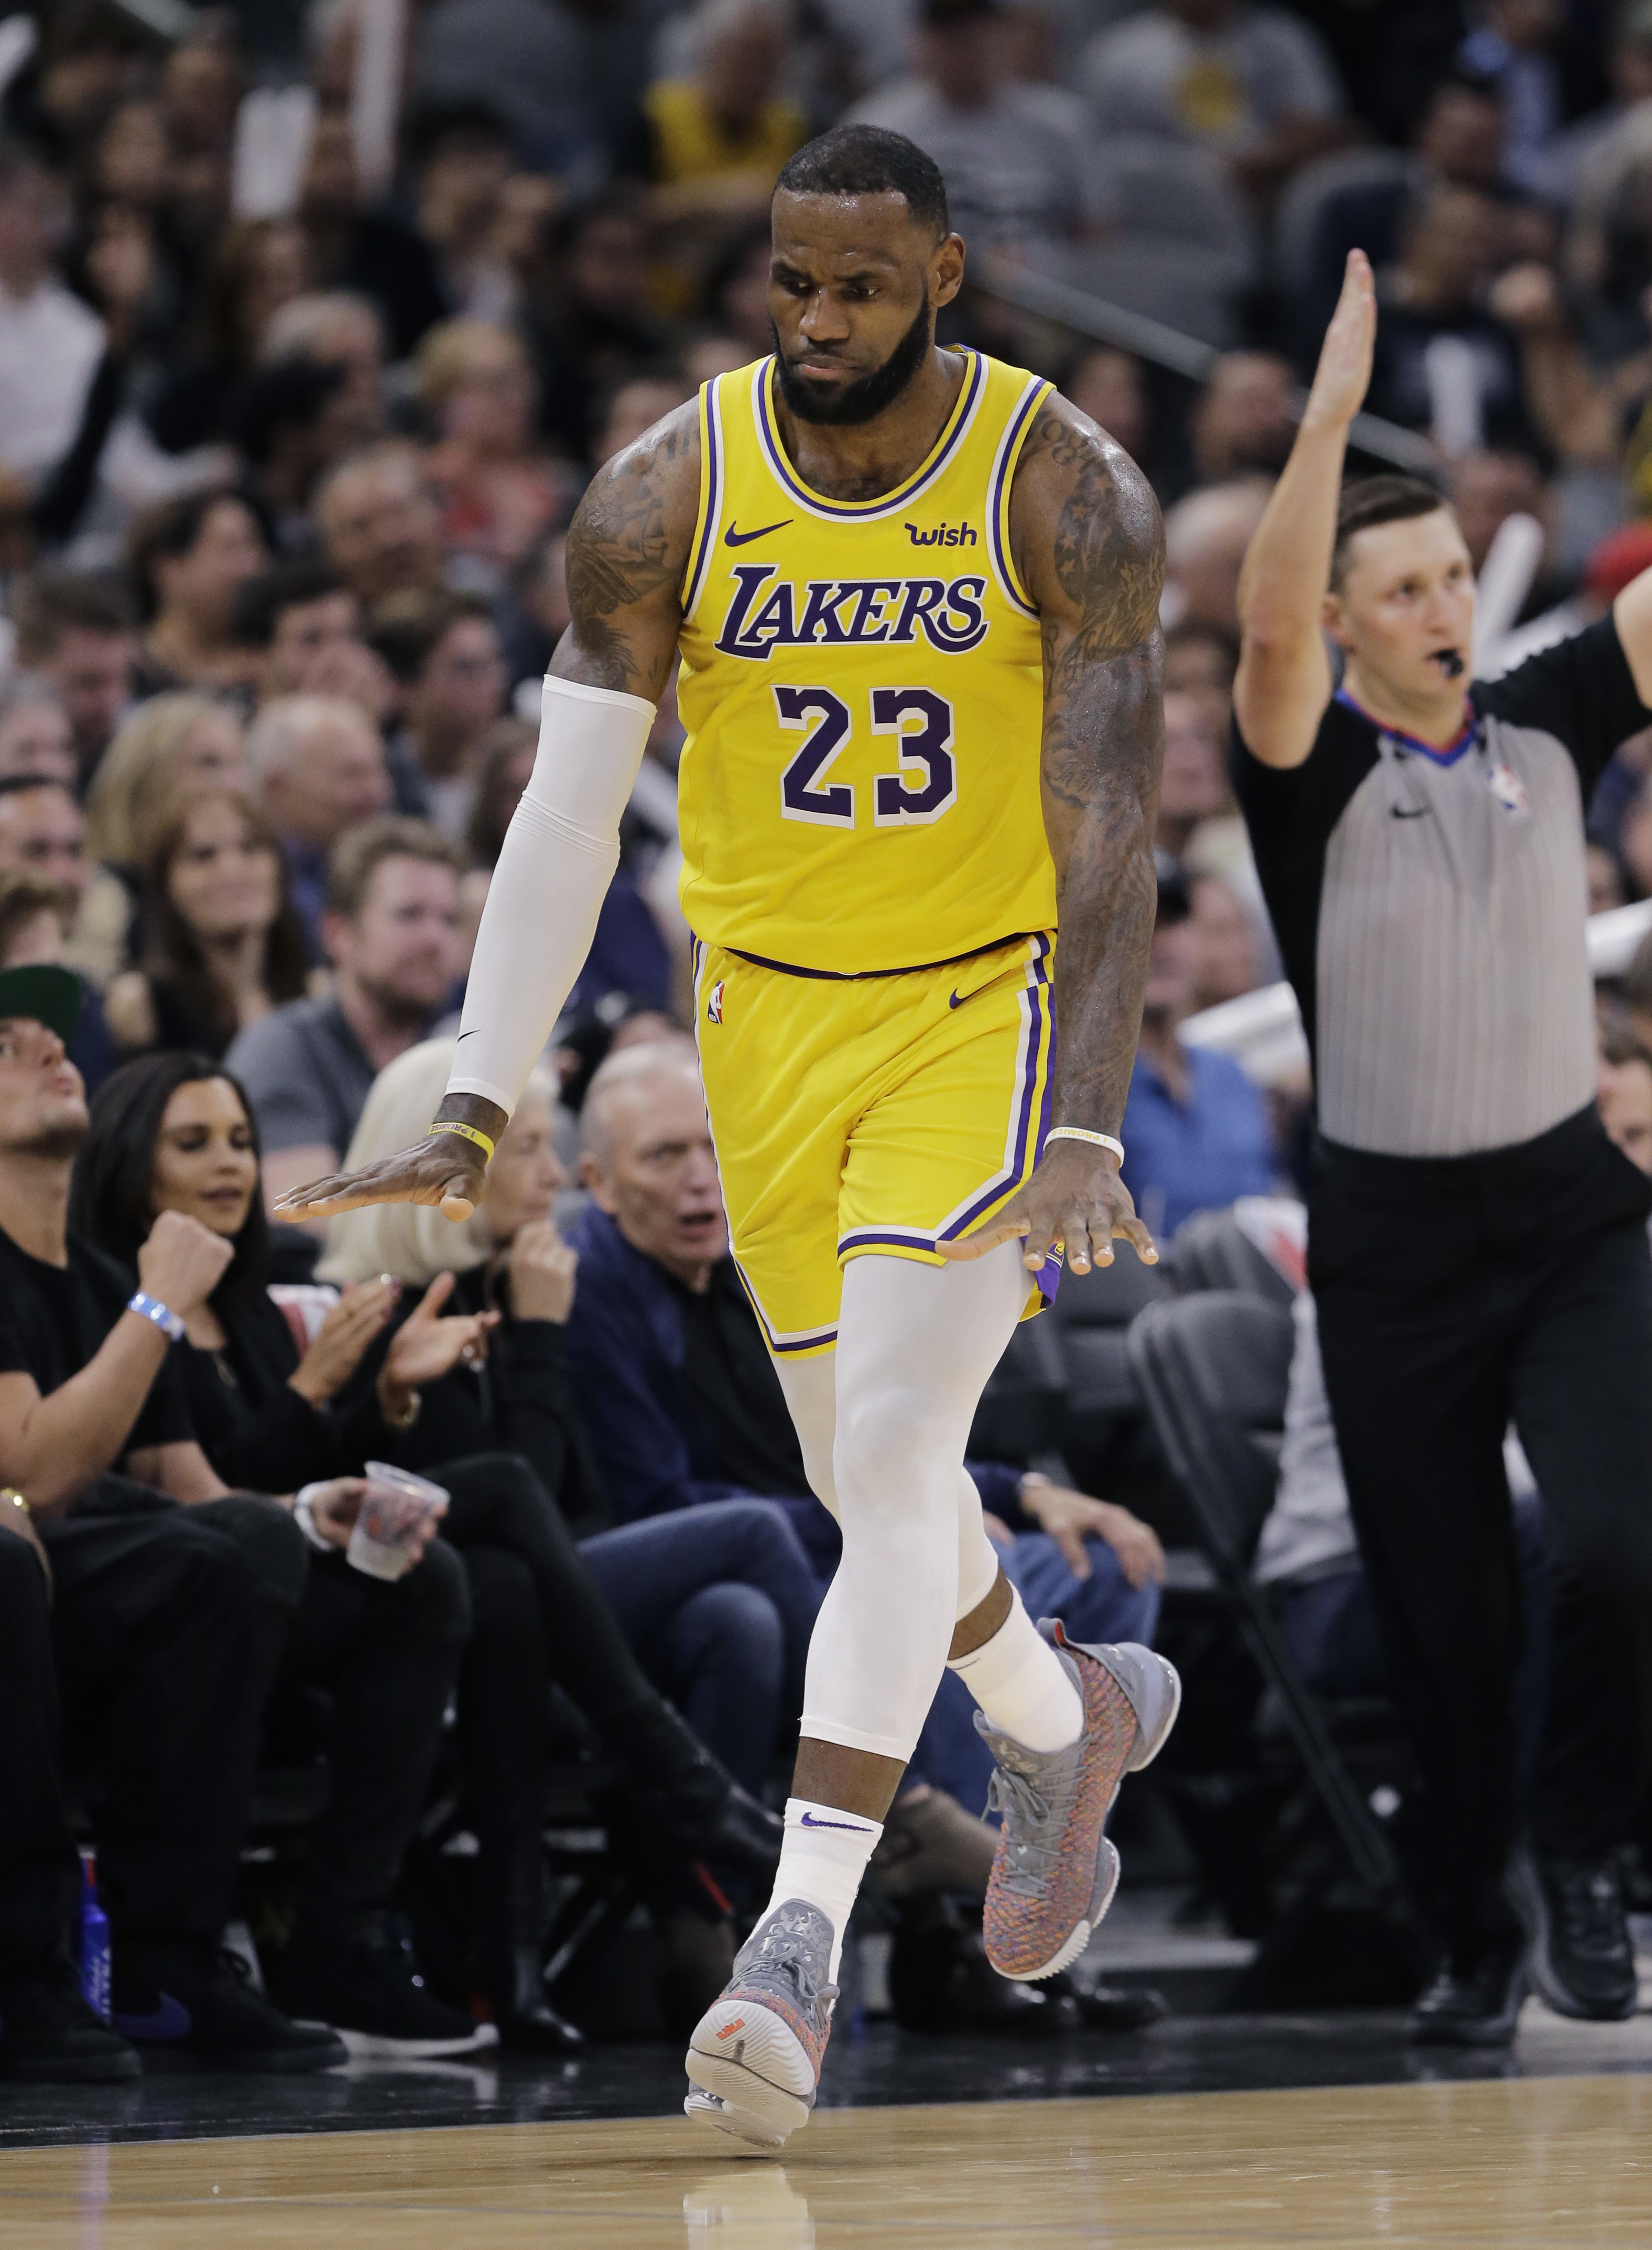 ... LeBron James Jokes  I m Ready  After Michael Jordan 1-on-1 Challenge 0  1.0 0 900 1 0 0 Eric Gay Associated Press Timothy Rapp 600 article 0 10 0  ... e174c144b